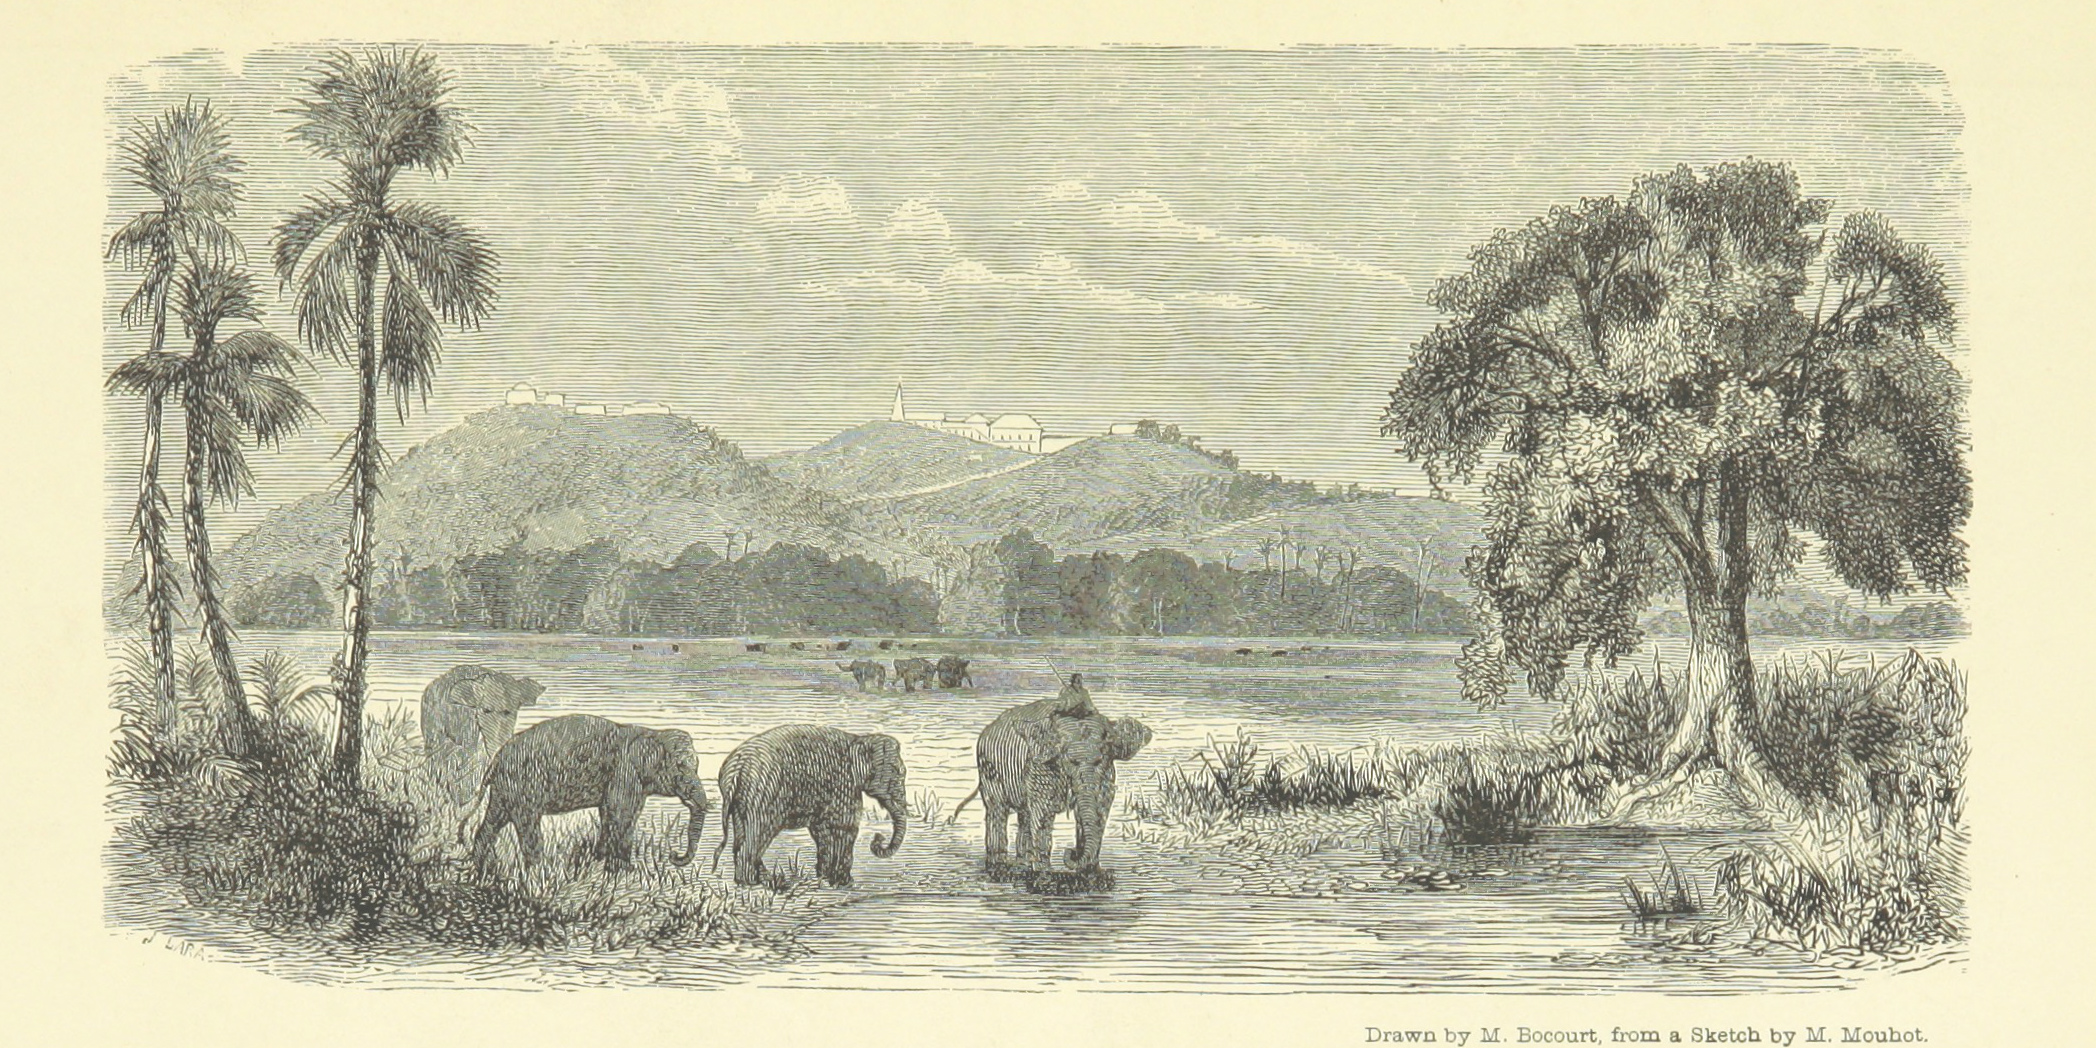 An illustration of elephants in Thailand in the 19th century. There is a rider on the back of the first elephant.